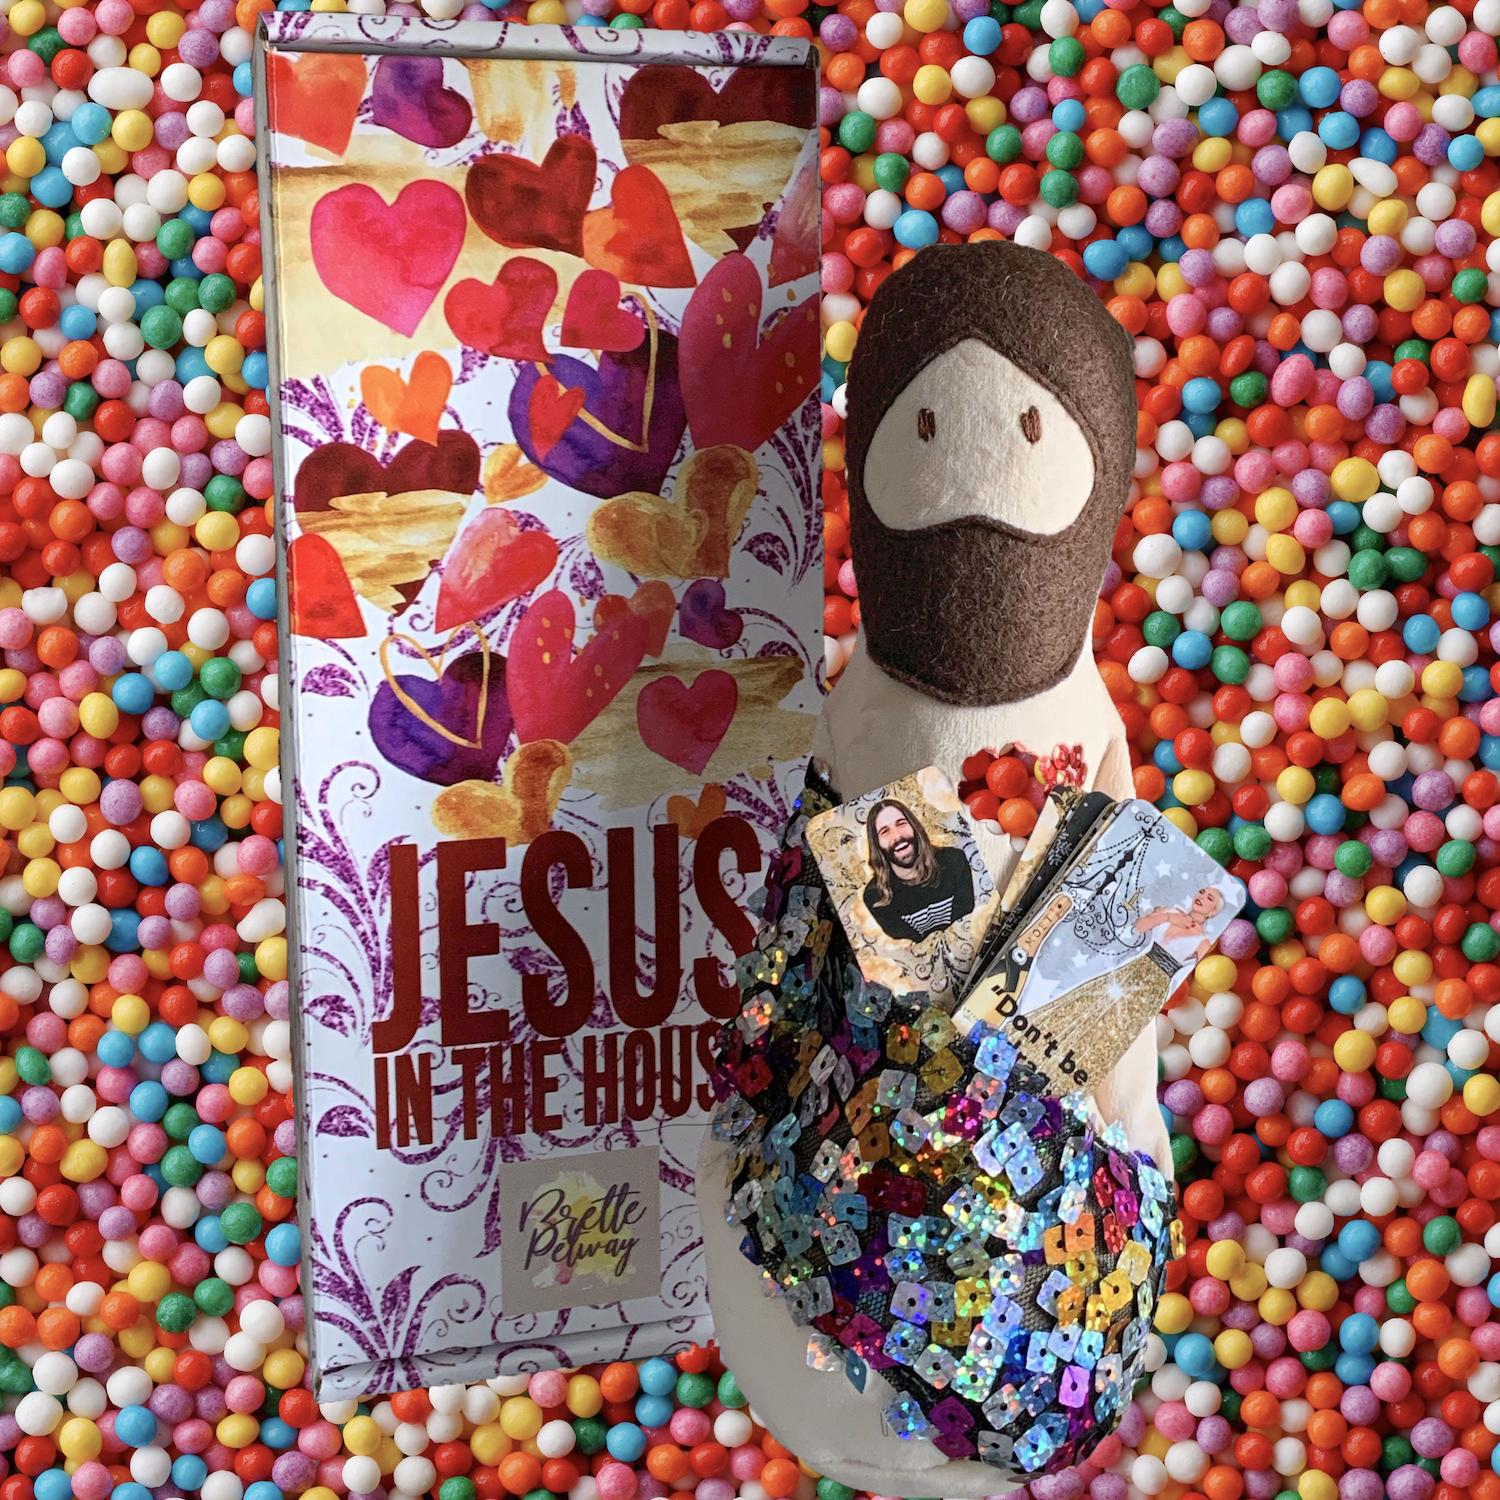 jesus_in_the_house_lgbtq_gift_gay_christian_love_is_love_03.min